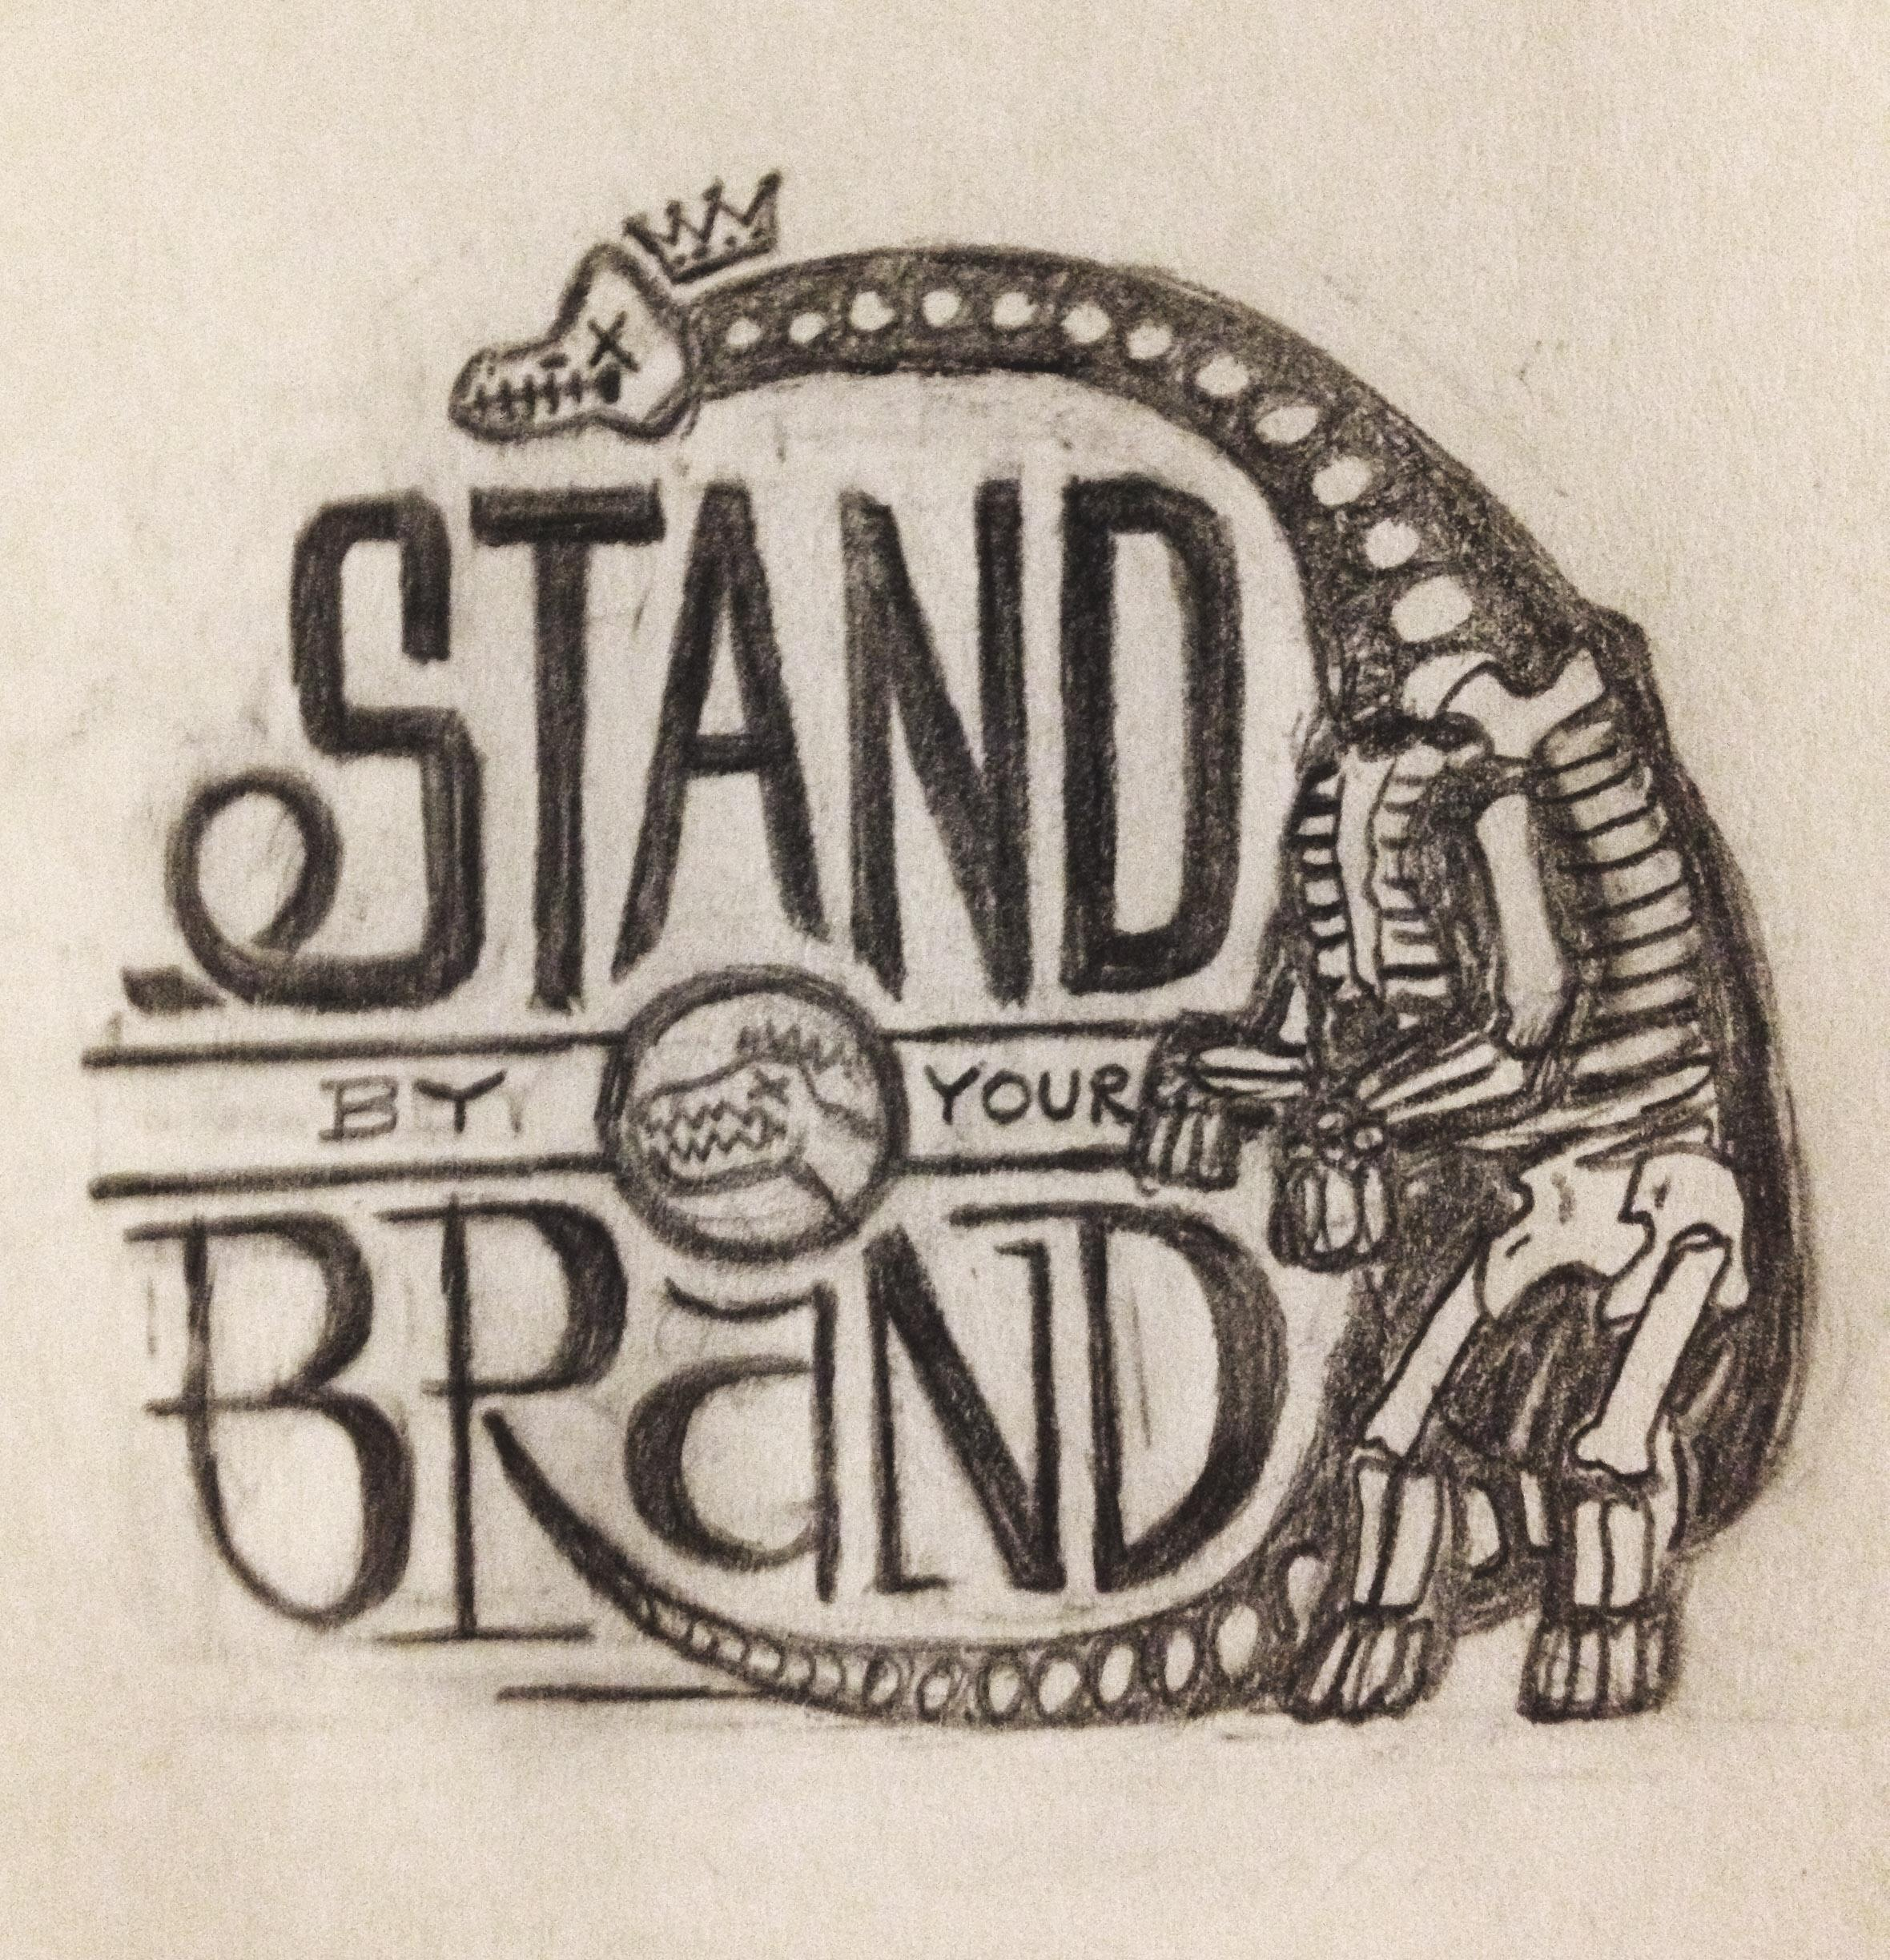 Stand By Your Brand - image 3 - student project